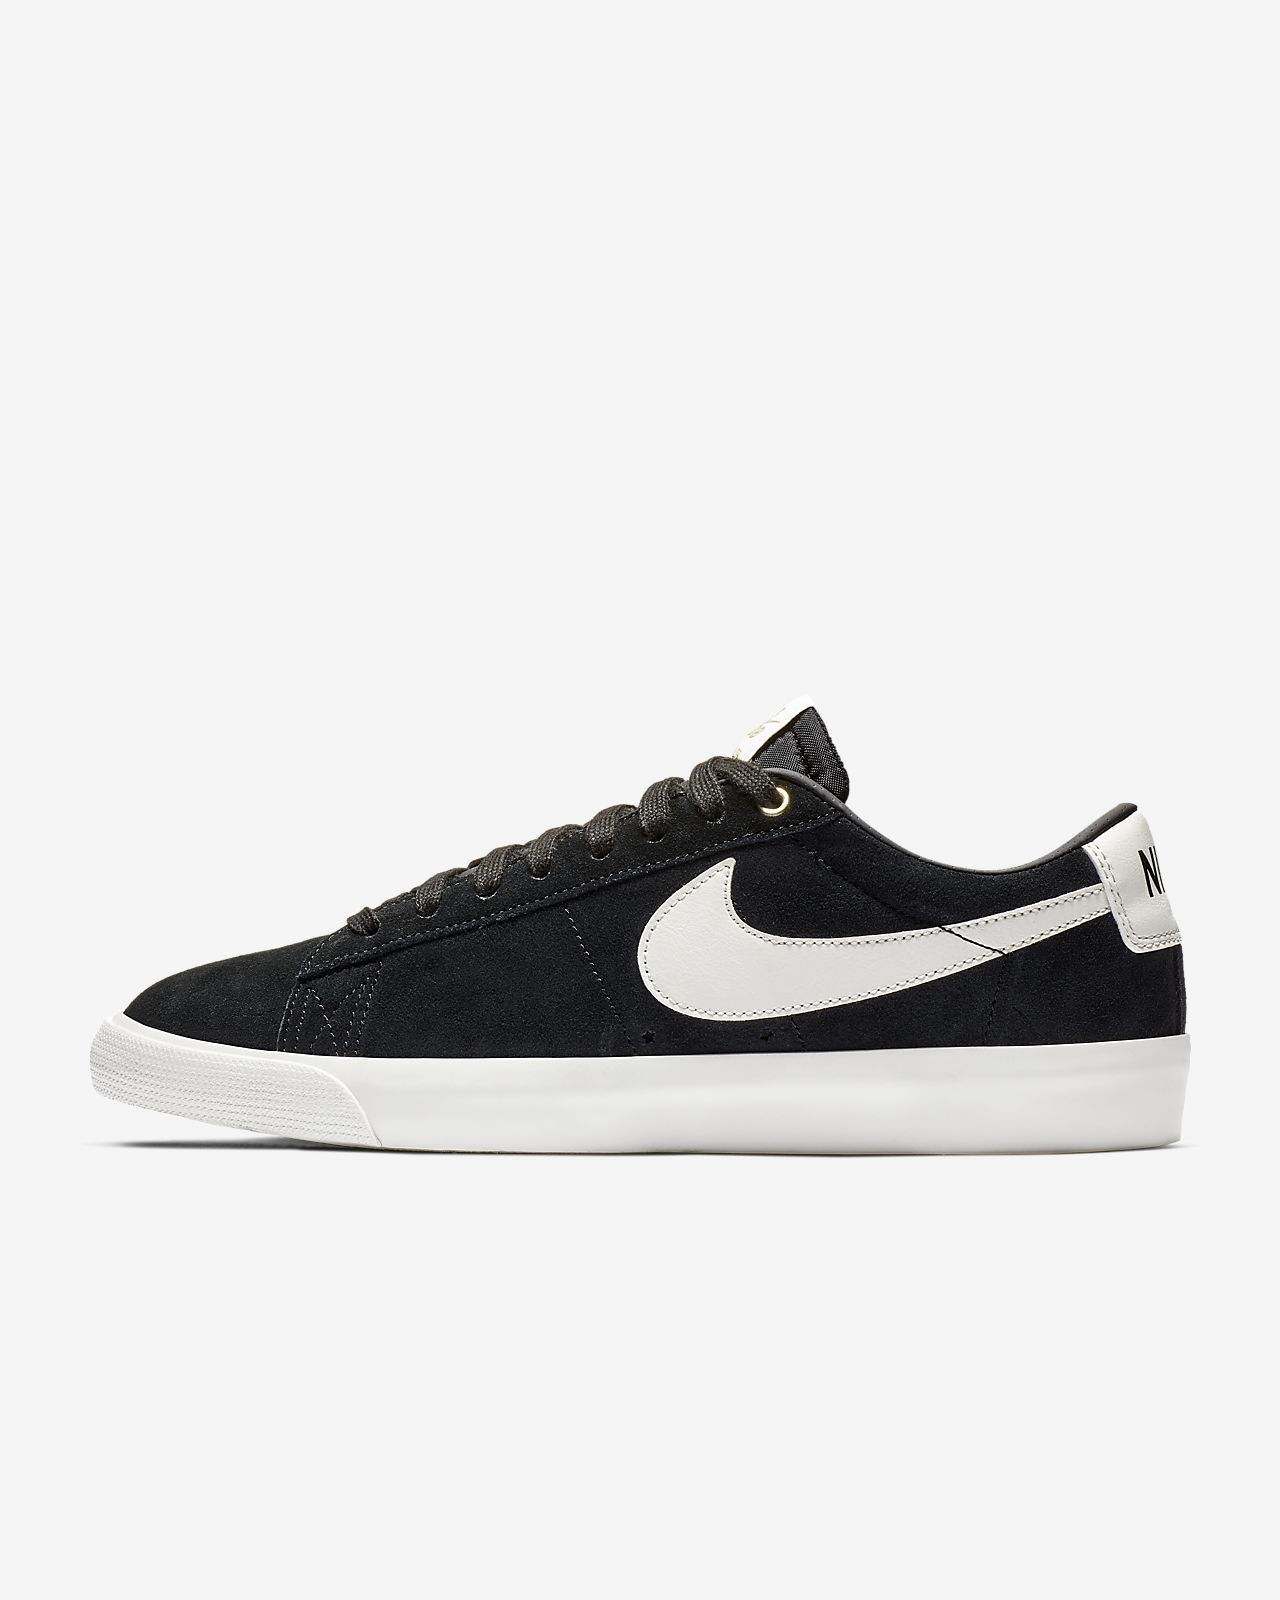 new concept 570e6 f2821 ... switzerland nike sb blazer low gt mens skateboarding shoe 2367c fac89